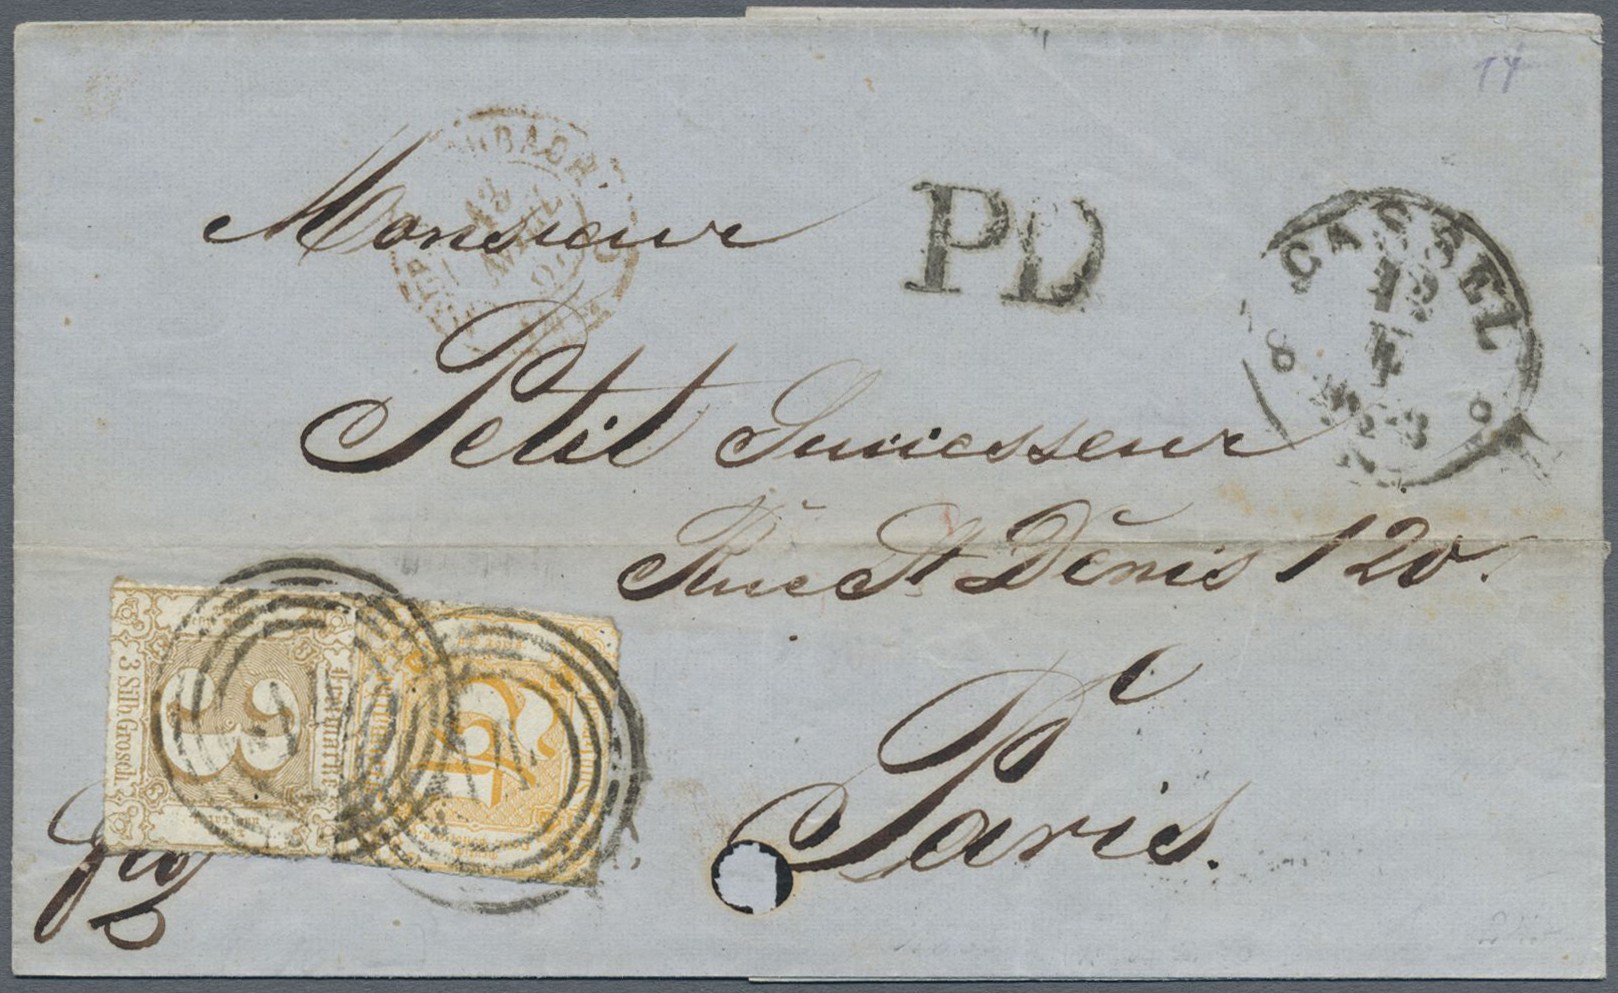 Lot 36497 - Thurn & Taxis - Marken und Briefe  -  Auktionshaus Christoph Gärtner GmbH & Co. KG Collections Germany,  Collections Supplement, Surprise boxes #39 Day 7